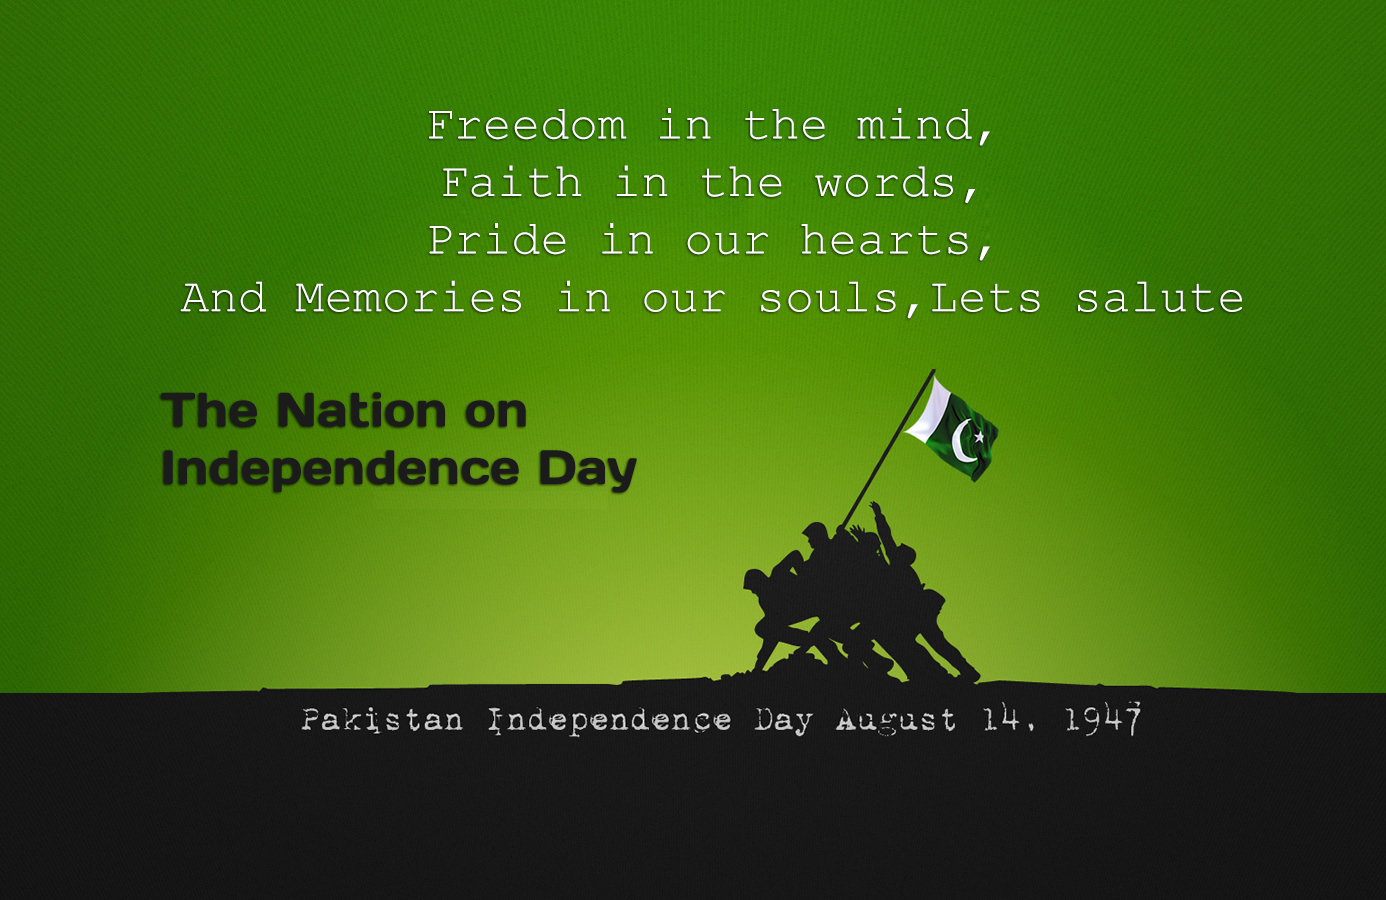 14-August-Independence-Day-Of-Pakistan-Wallpaper-and-quotes